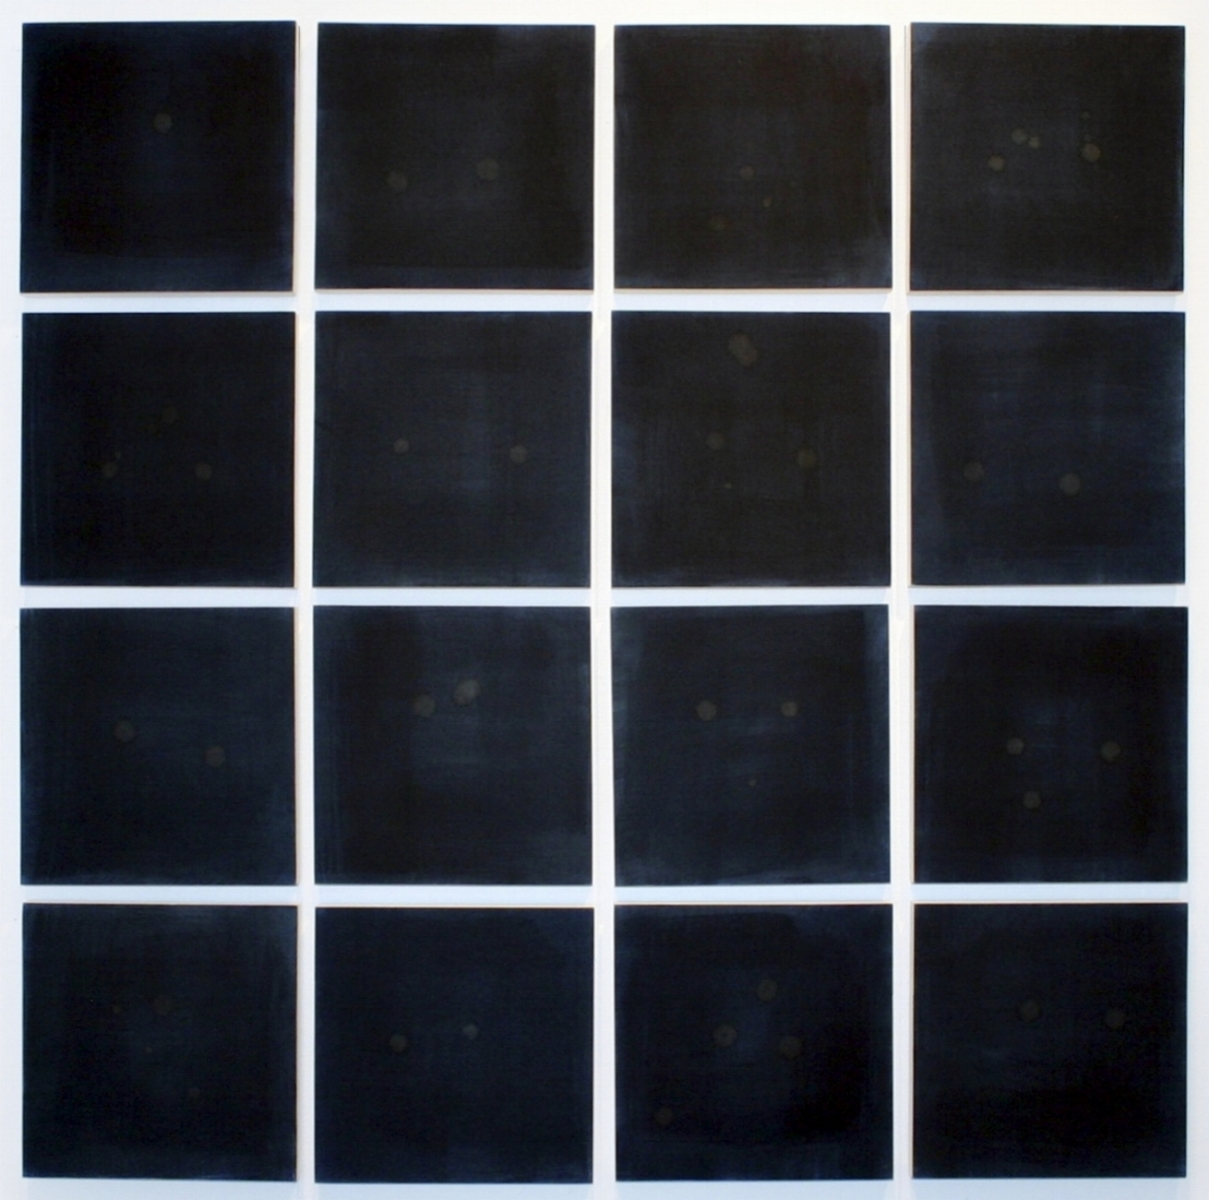 Tears I - 4 x 4 Square: 16 Midnight Blue Squares,Ashk Series,  2016,Artist's tears on inked paper on board,20 x 20 cm each